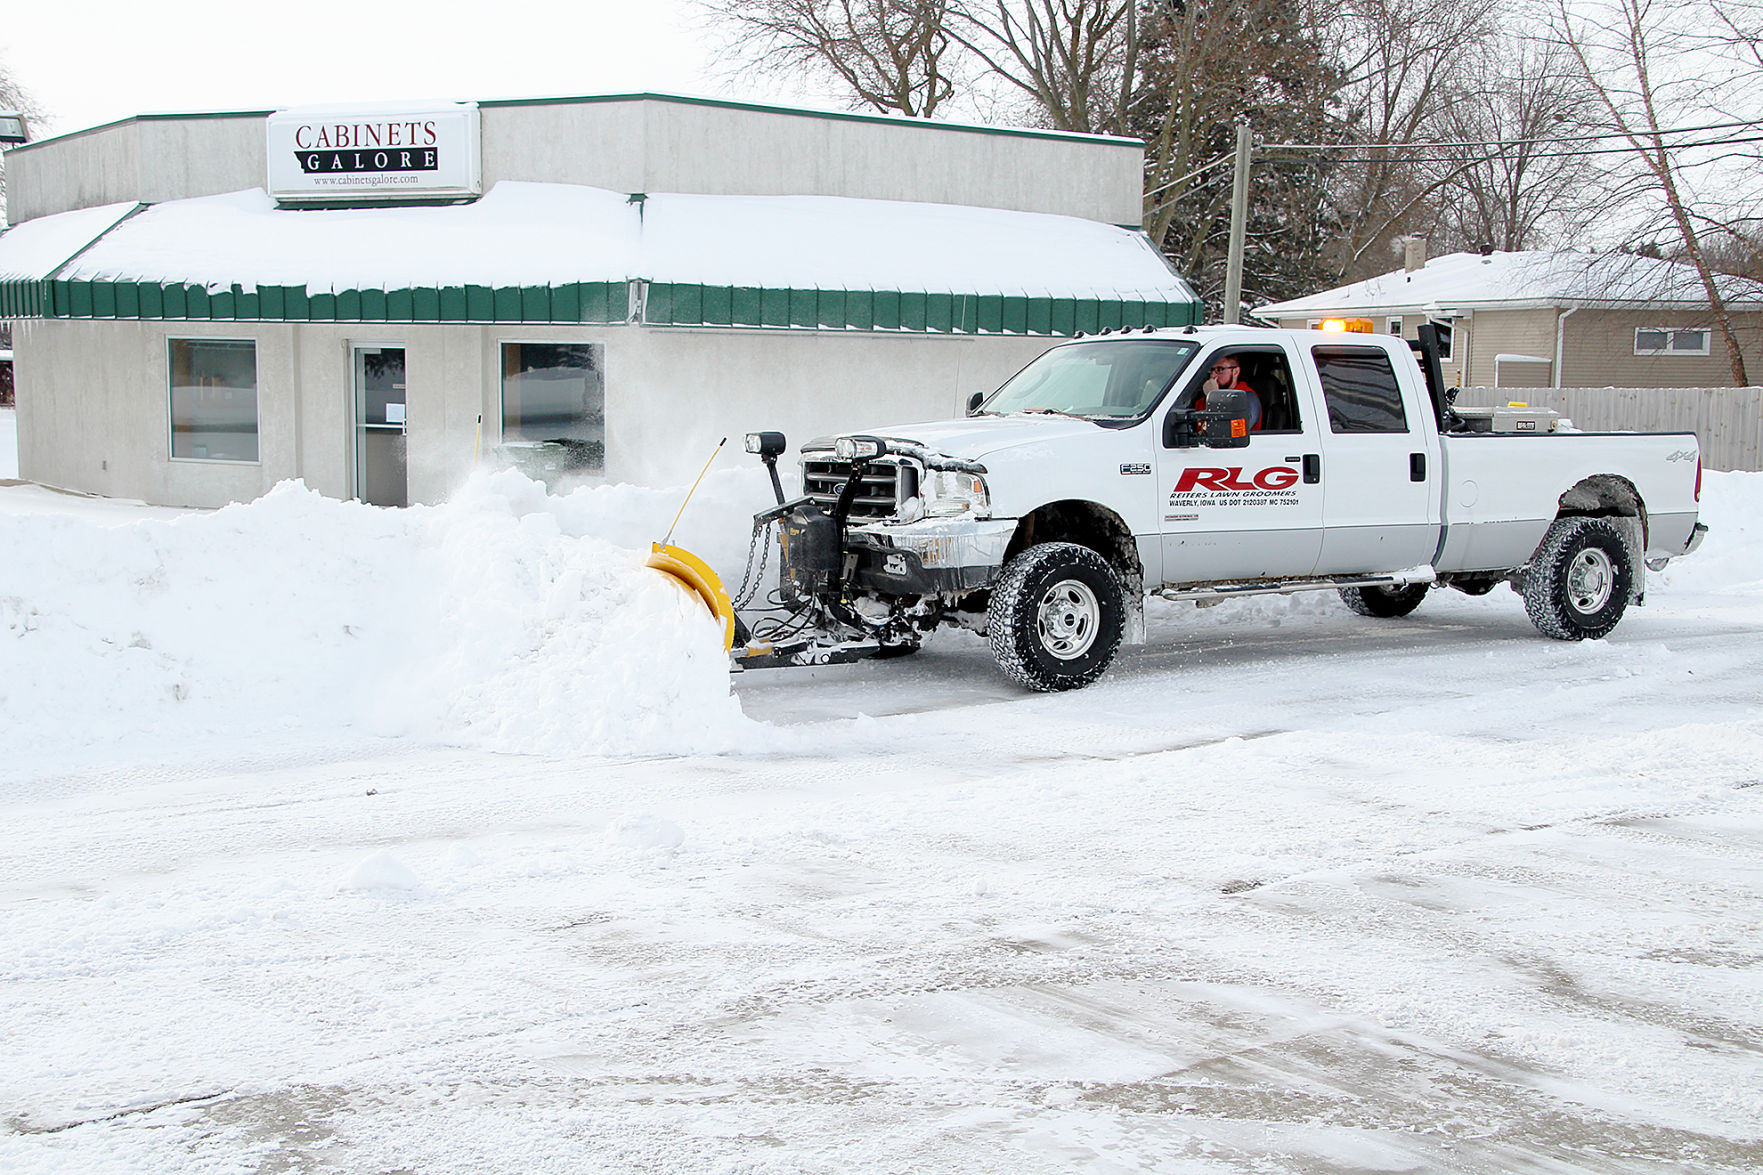 Reiter Plows At Cabinets Galore Waverly Newspapers Communitynewspapergroup  Com